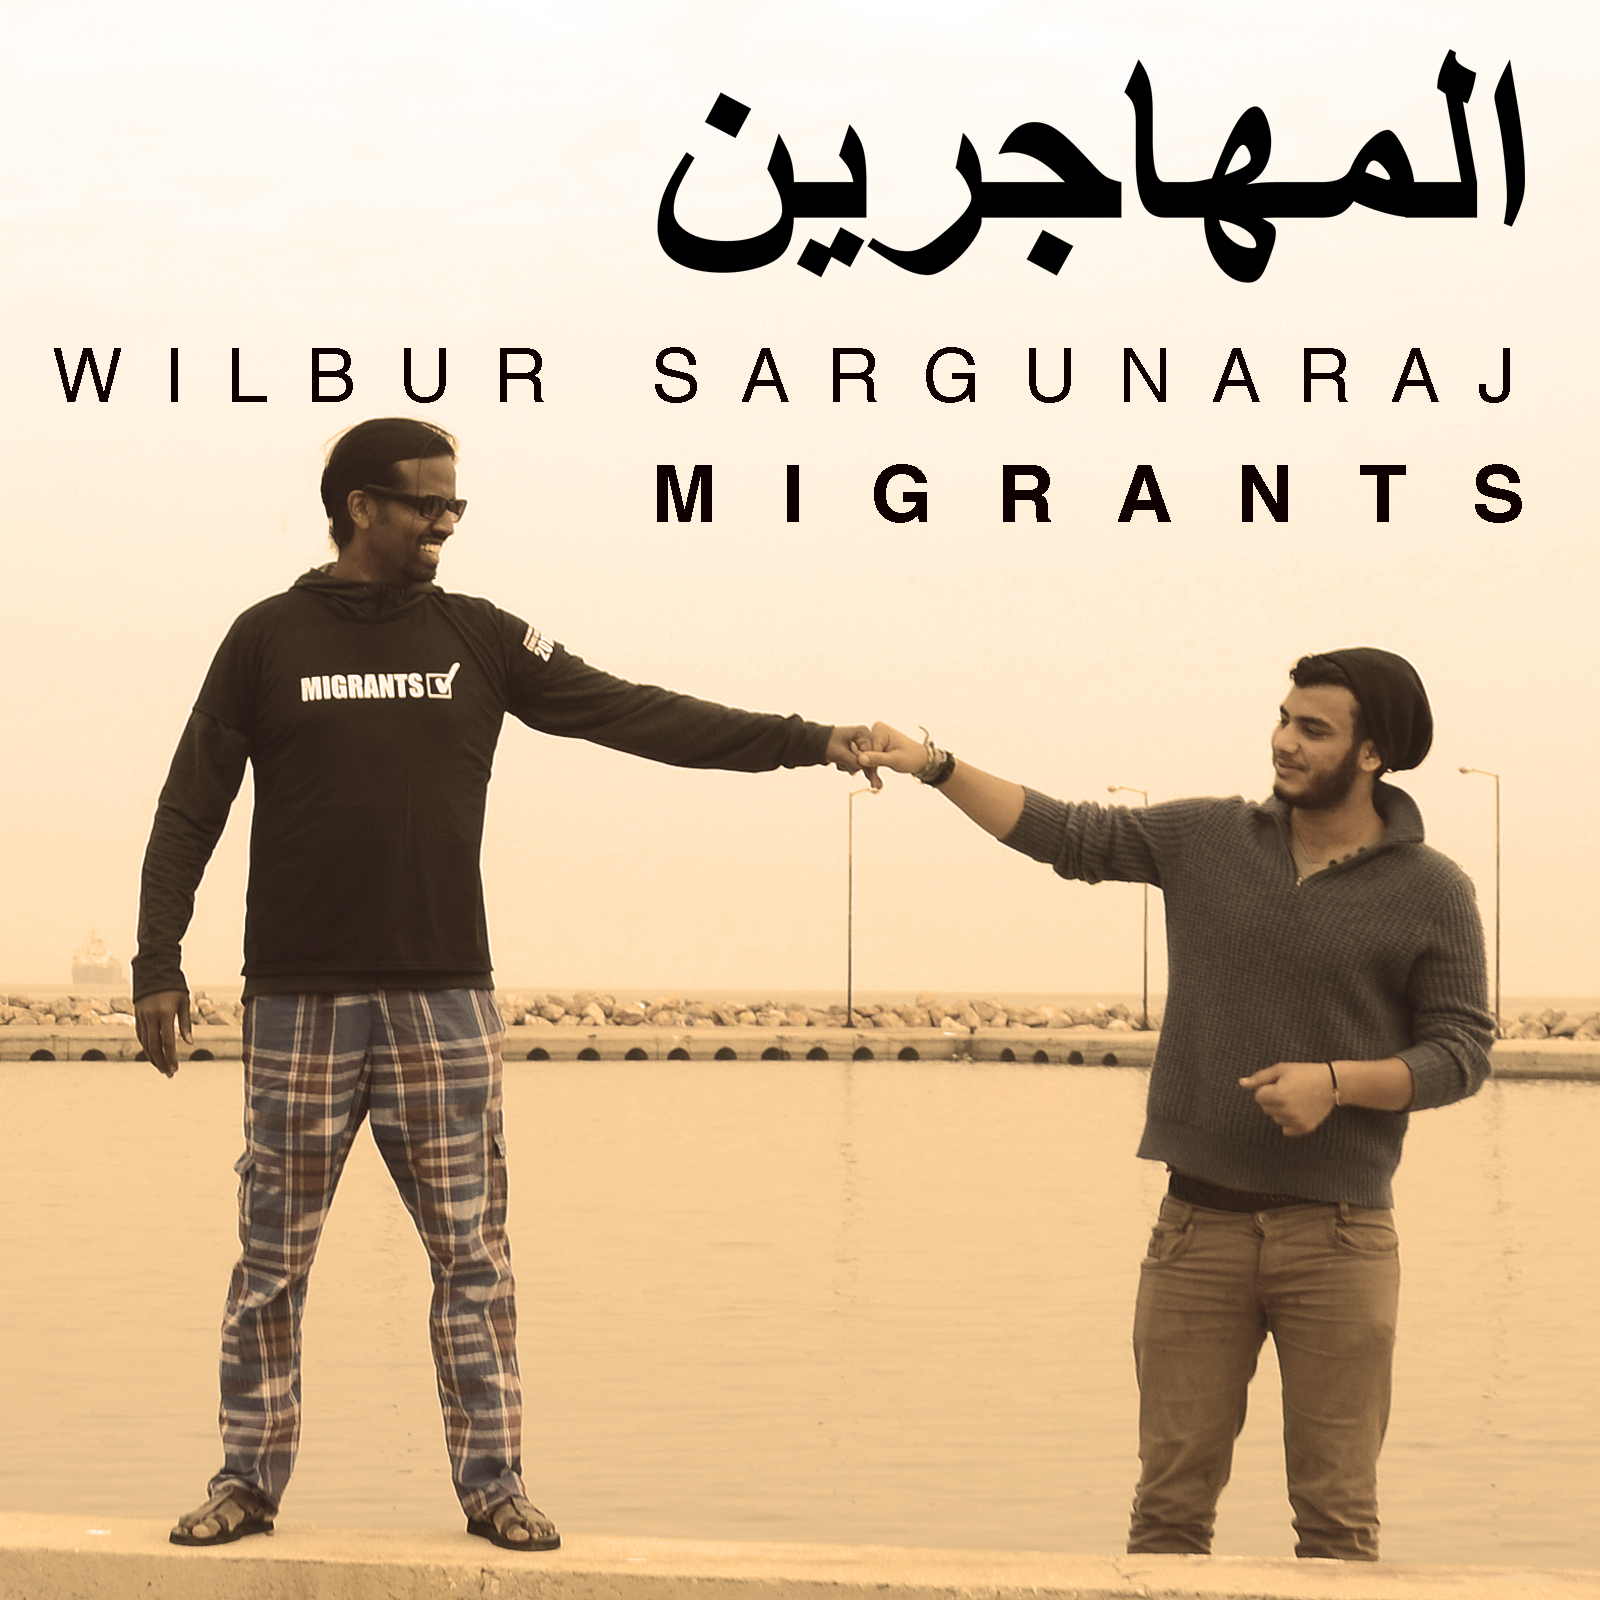 wilbur s migrants ep launches october 16 on tamman s birthday it will be available on all digital platforms including itunes amazon spotify and many